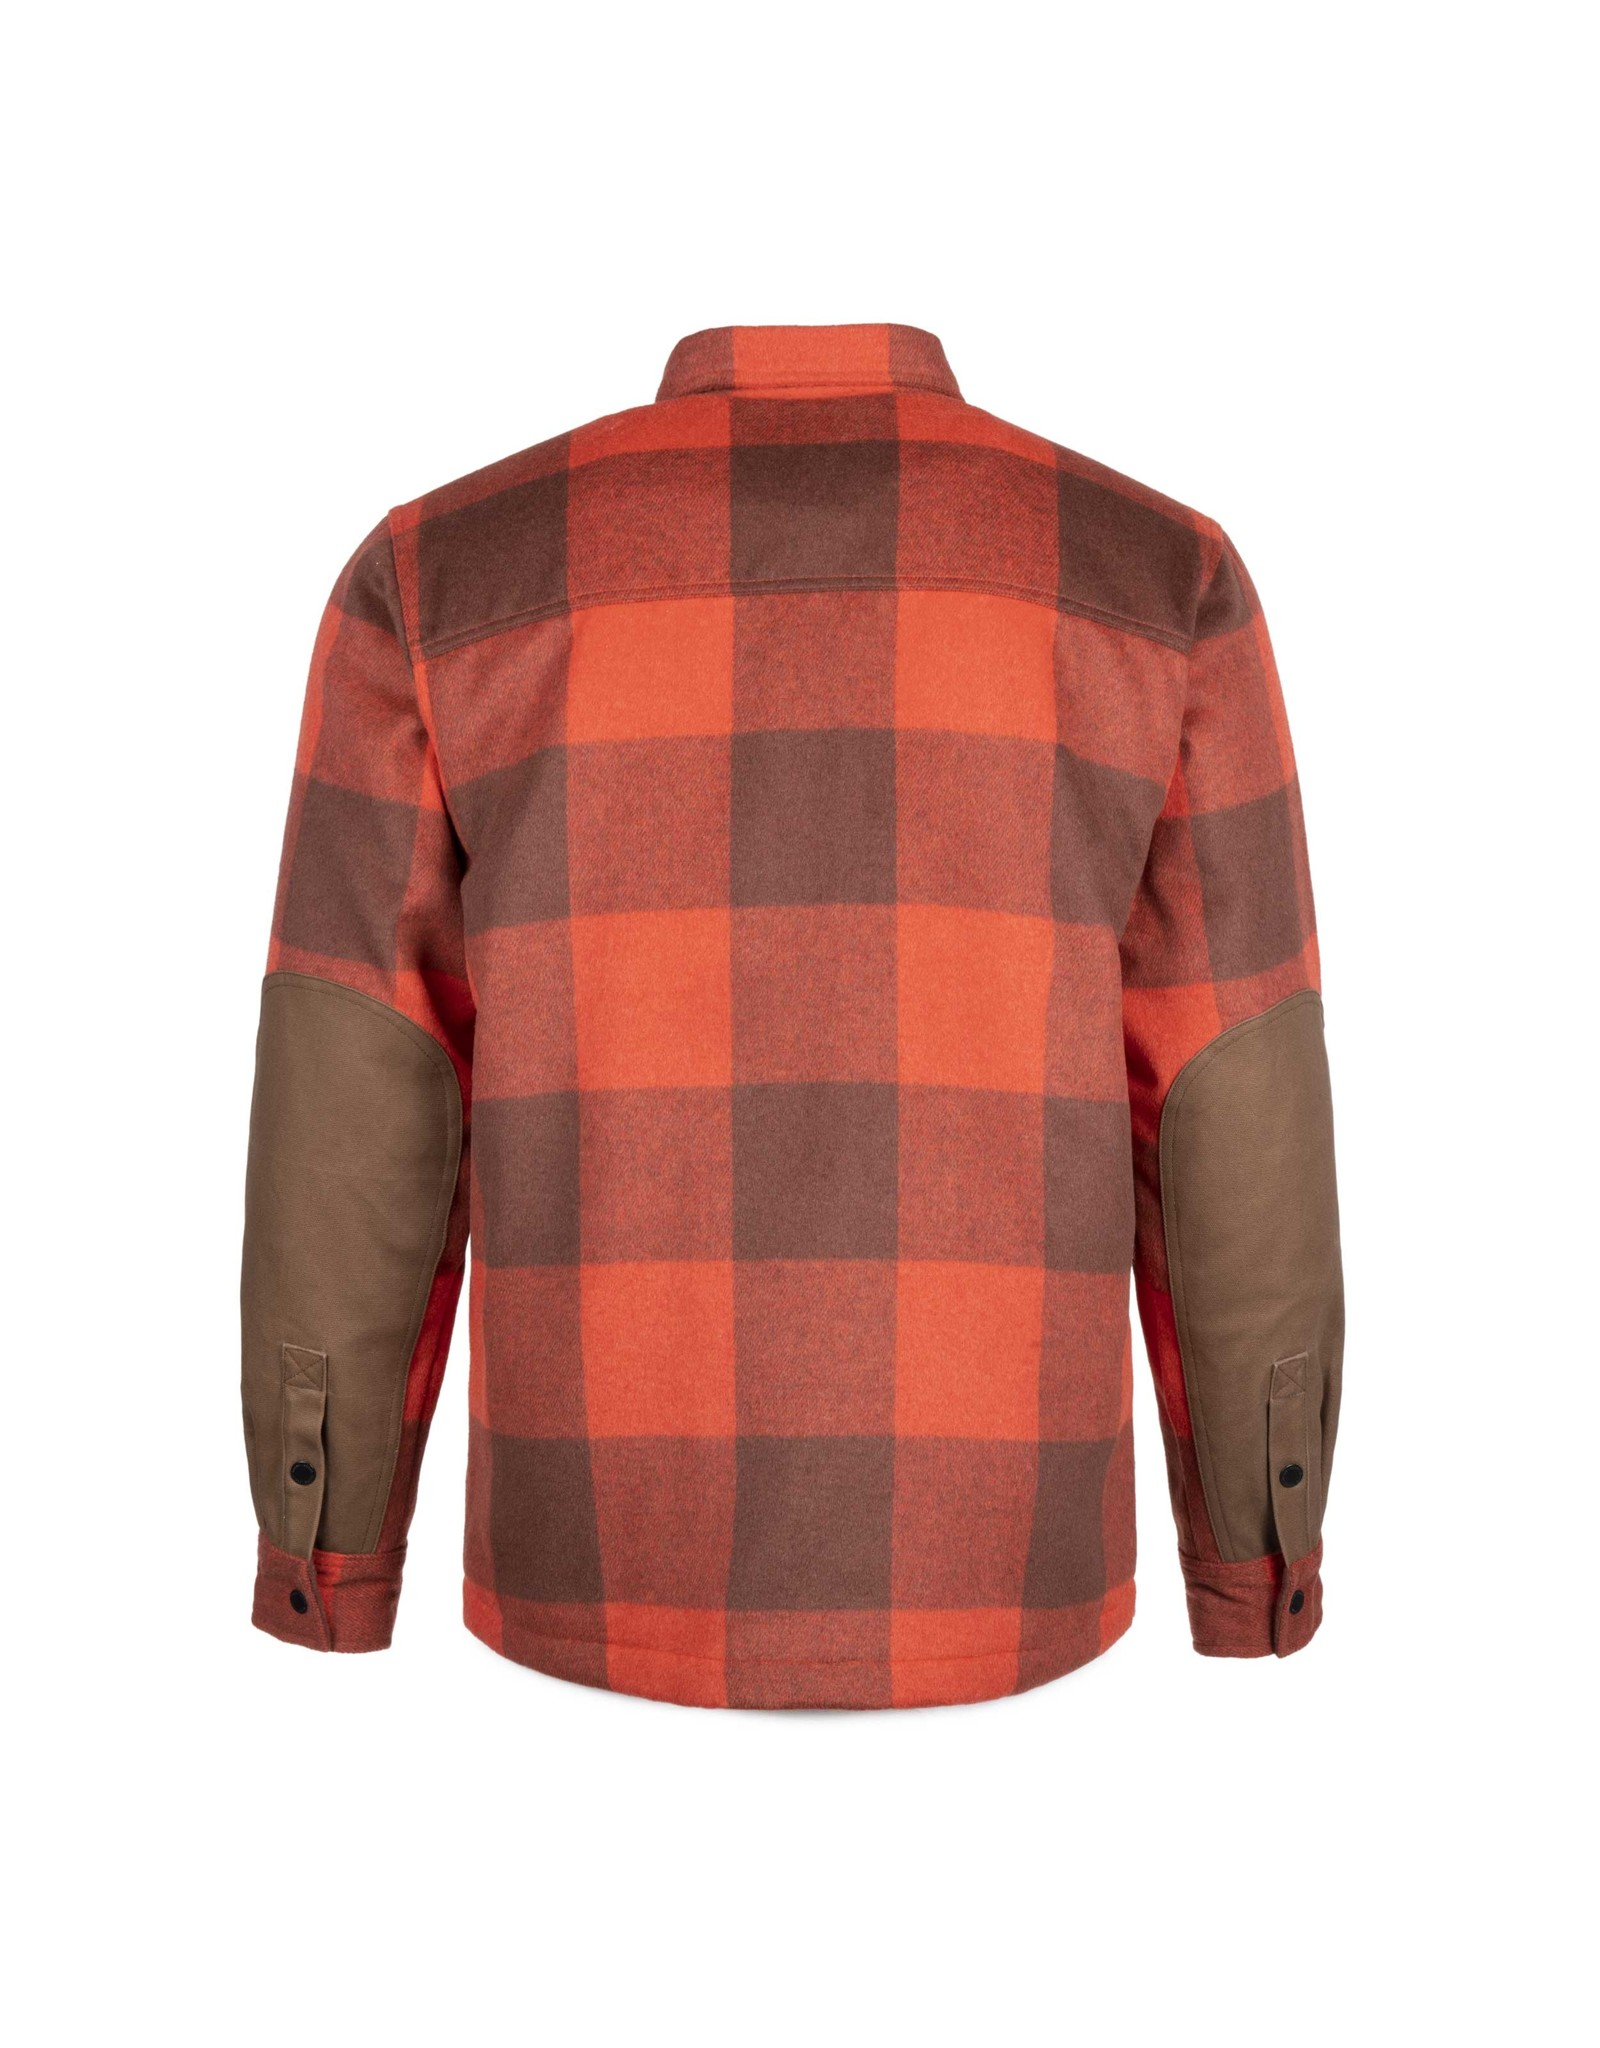 Canadian Wool Shirt Red & Camel